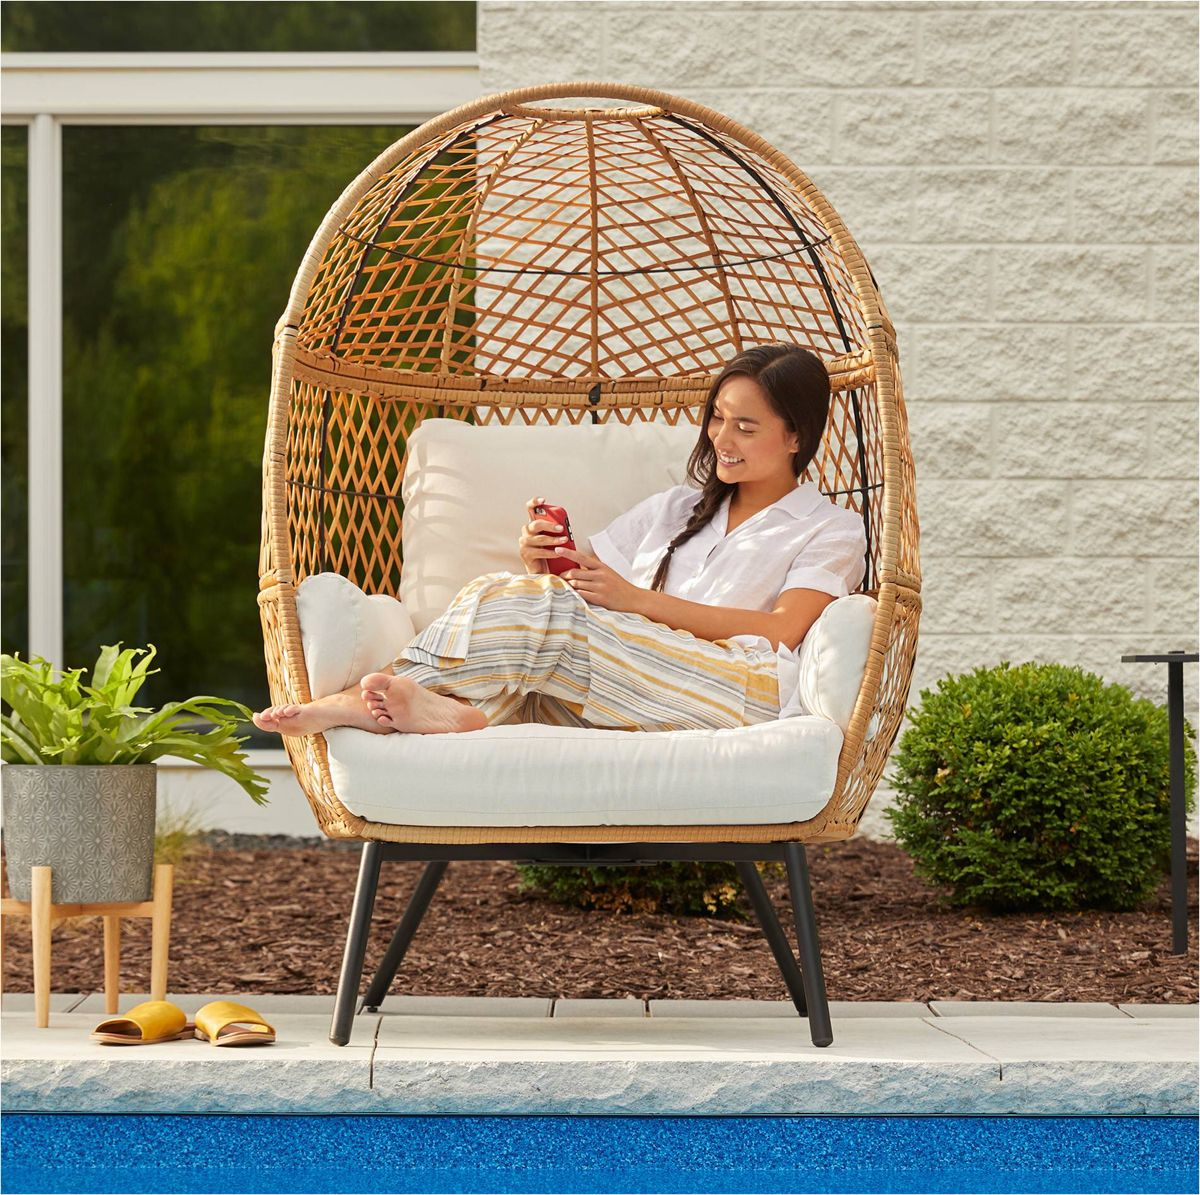 Patio & garden in 2020 Egg chair, Better homes, Patio chairs